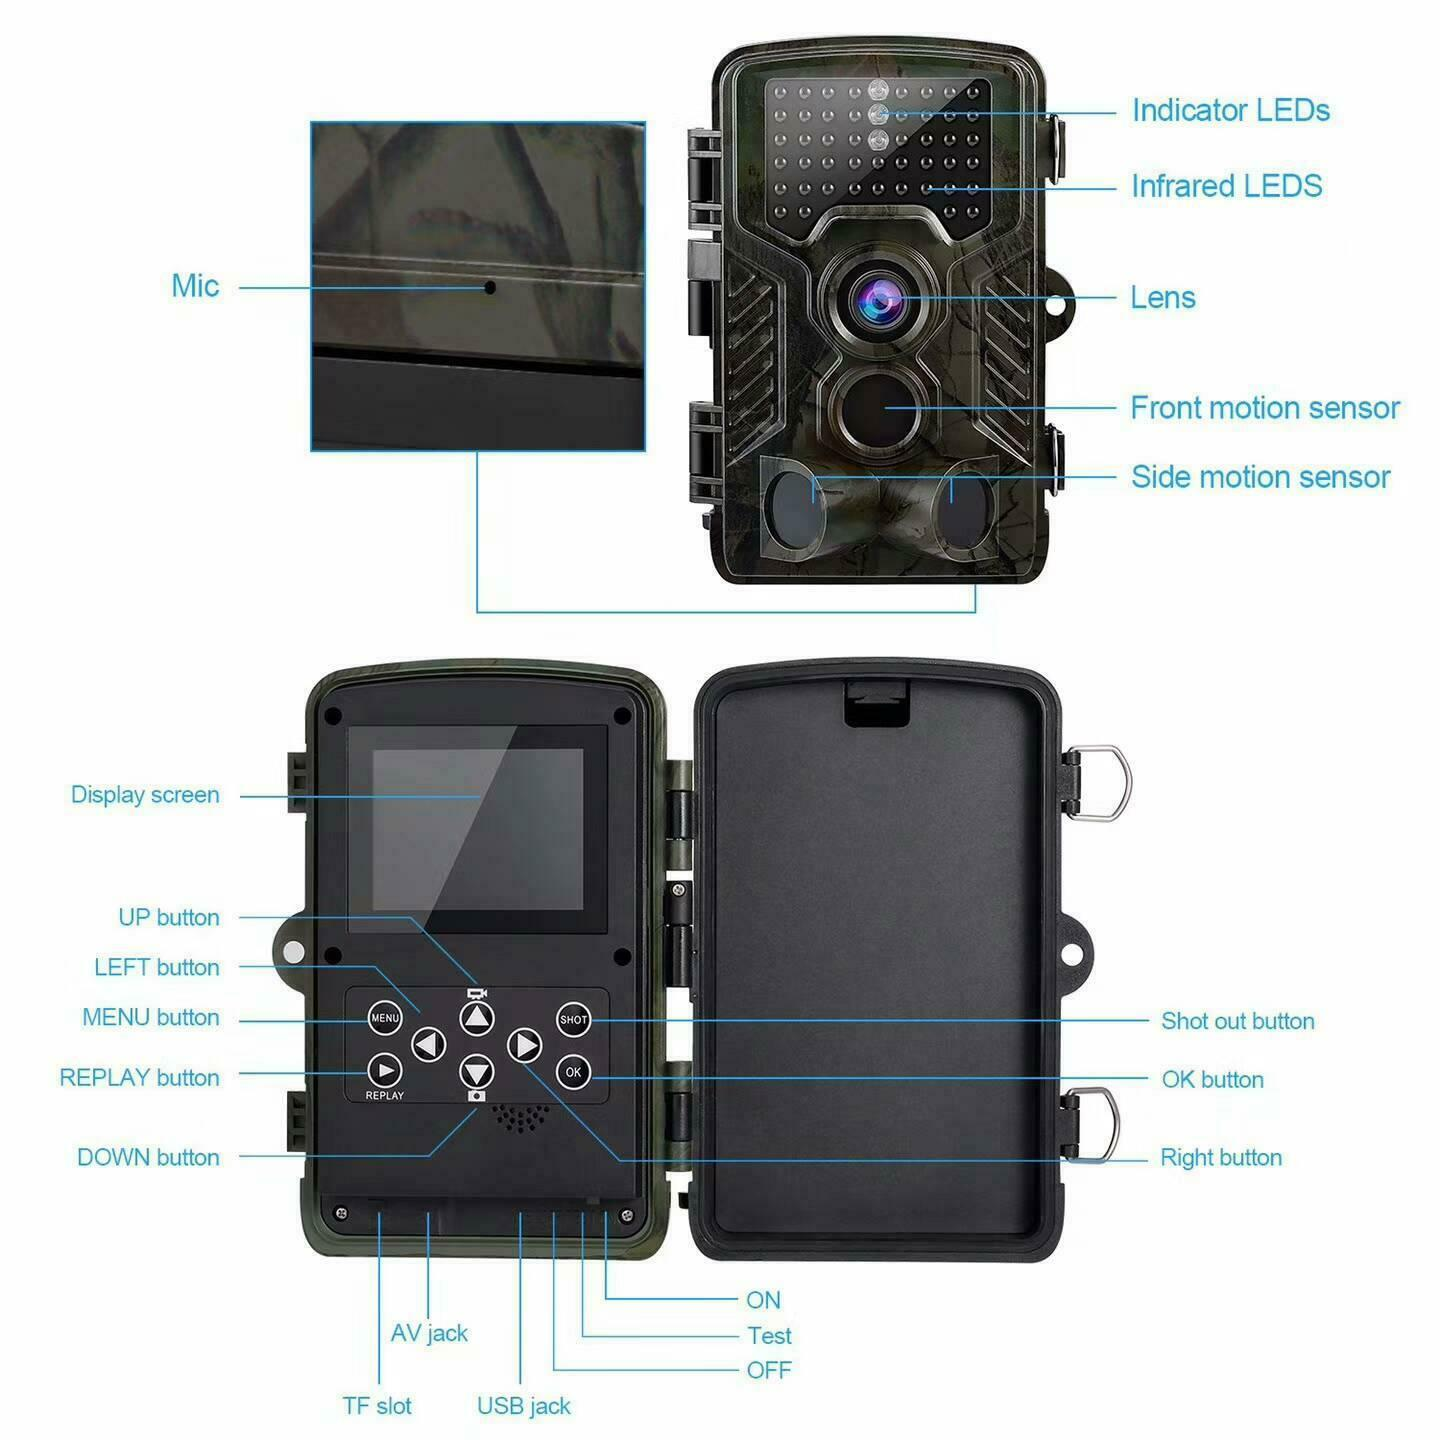 IR 8MP Hunting Camera 2.31 TFT LCD Display 1080P PIR  sensing angle TF card slot  best prices